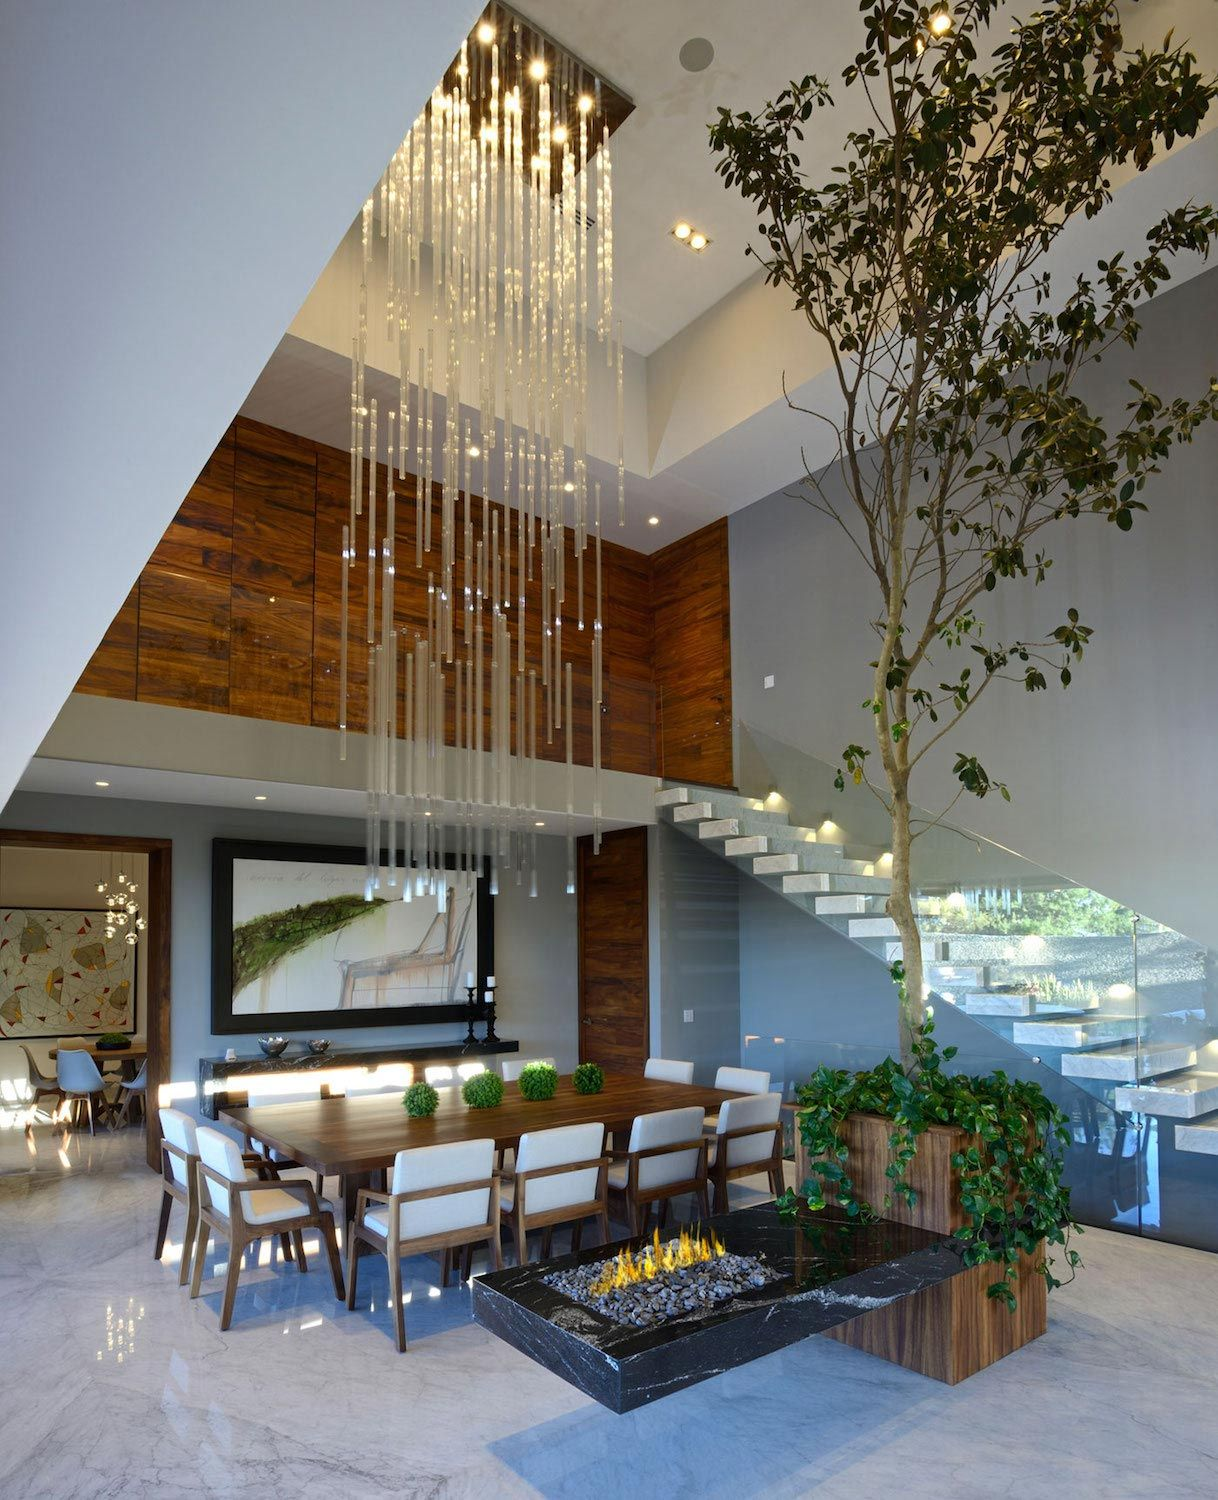 A Large Living Room To Socialise In: Modern Atrium House With Large Double-height Space Living